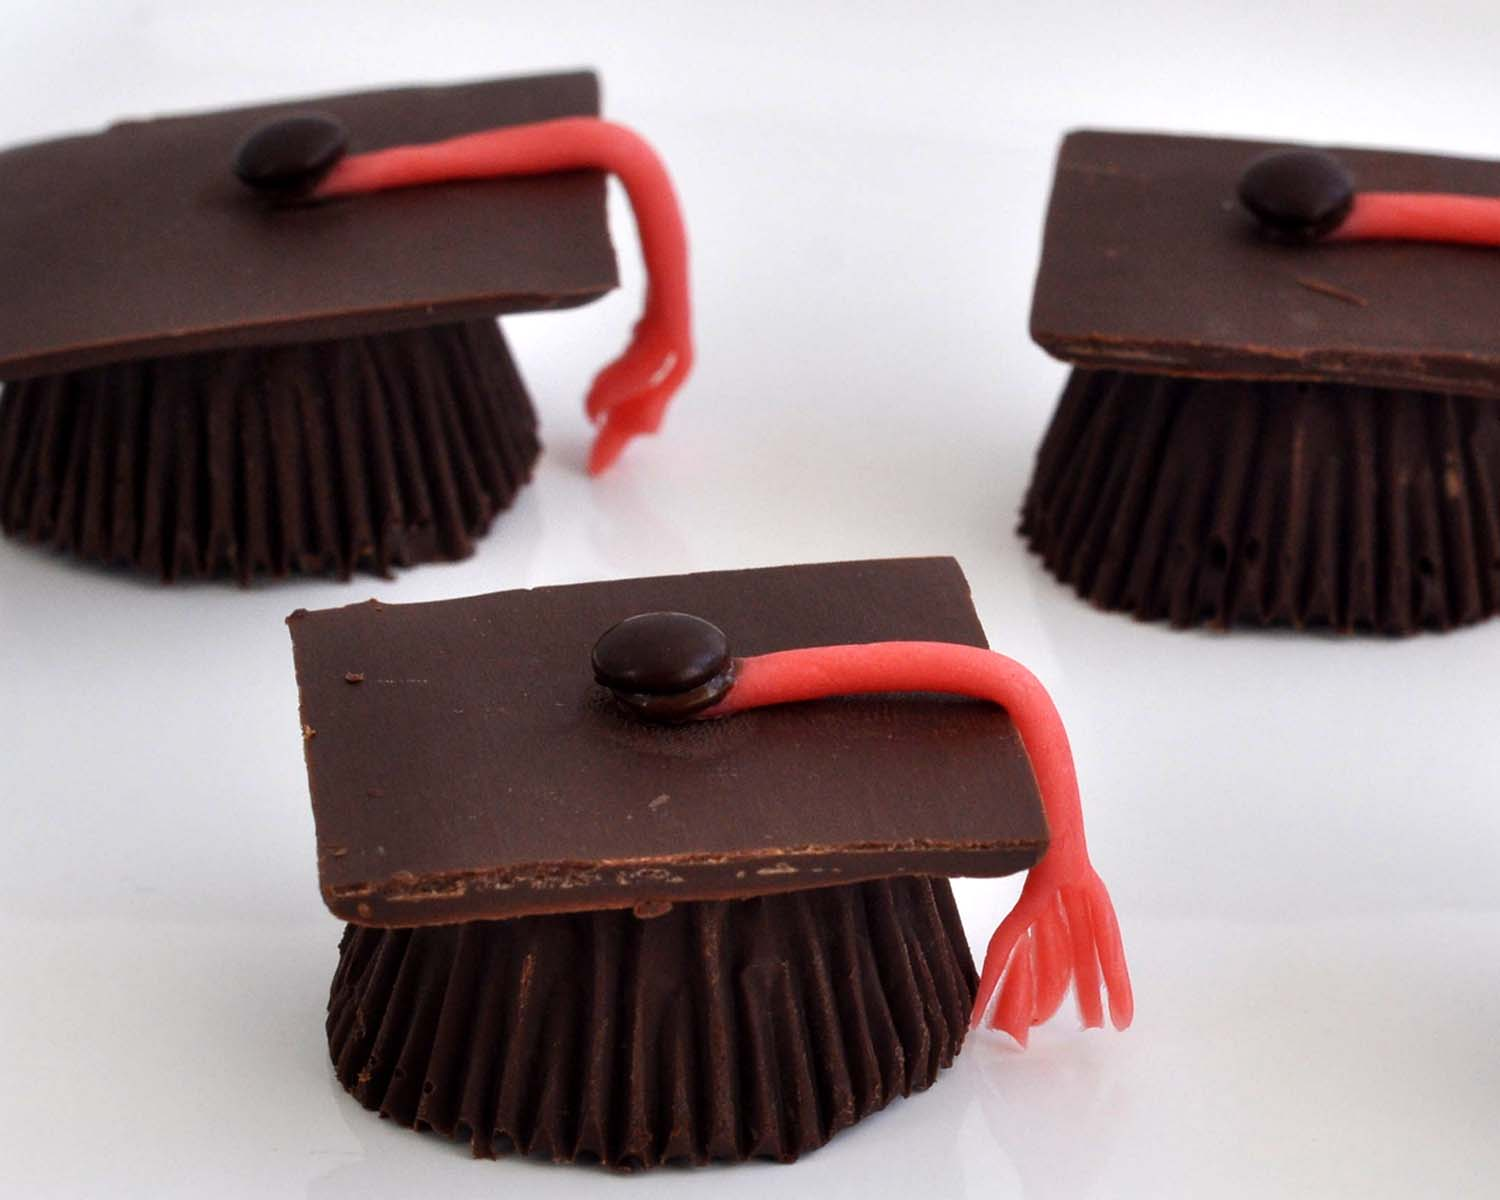 Graduation cap cake recipes